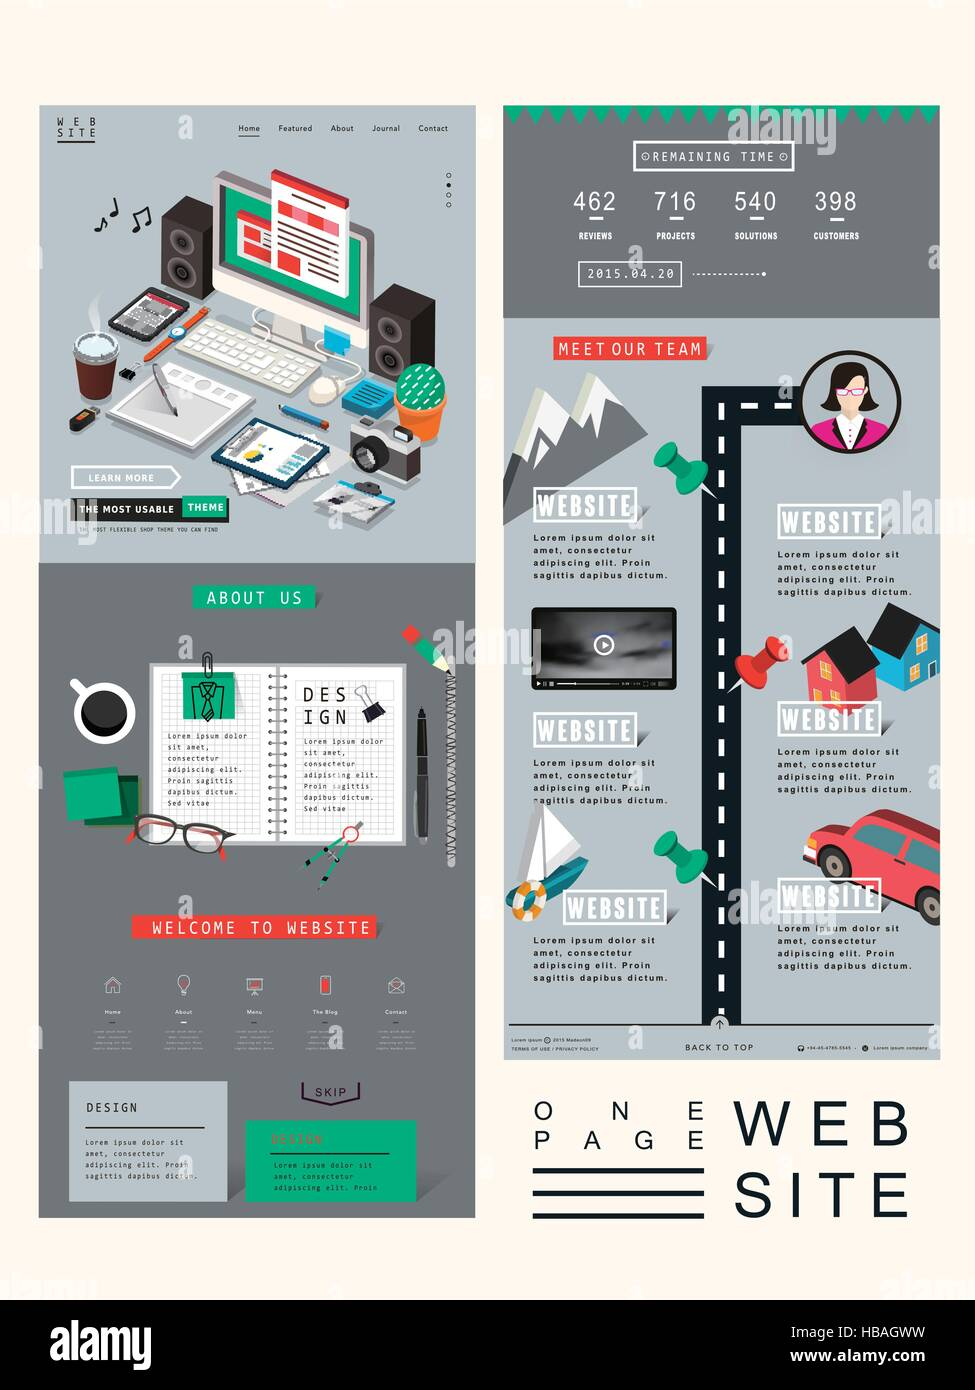 Workplace concept one page website design template in 3d isometric workplace concept one page website design template in 3d isometric style maxwellsz